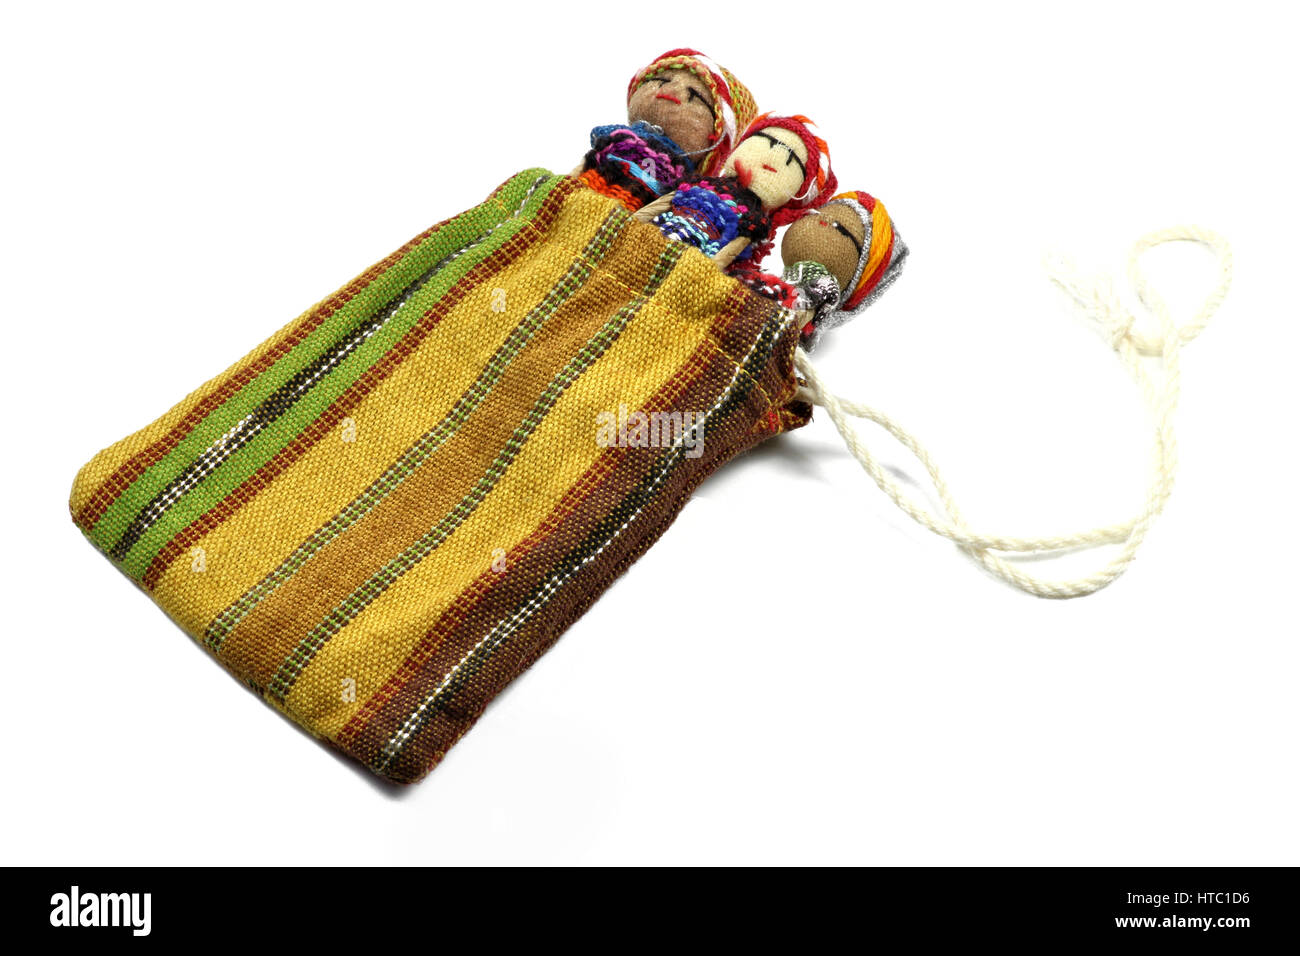 traditional worry dolls made in Guatemala isolated on white background - Stock Image